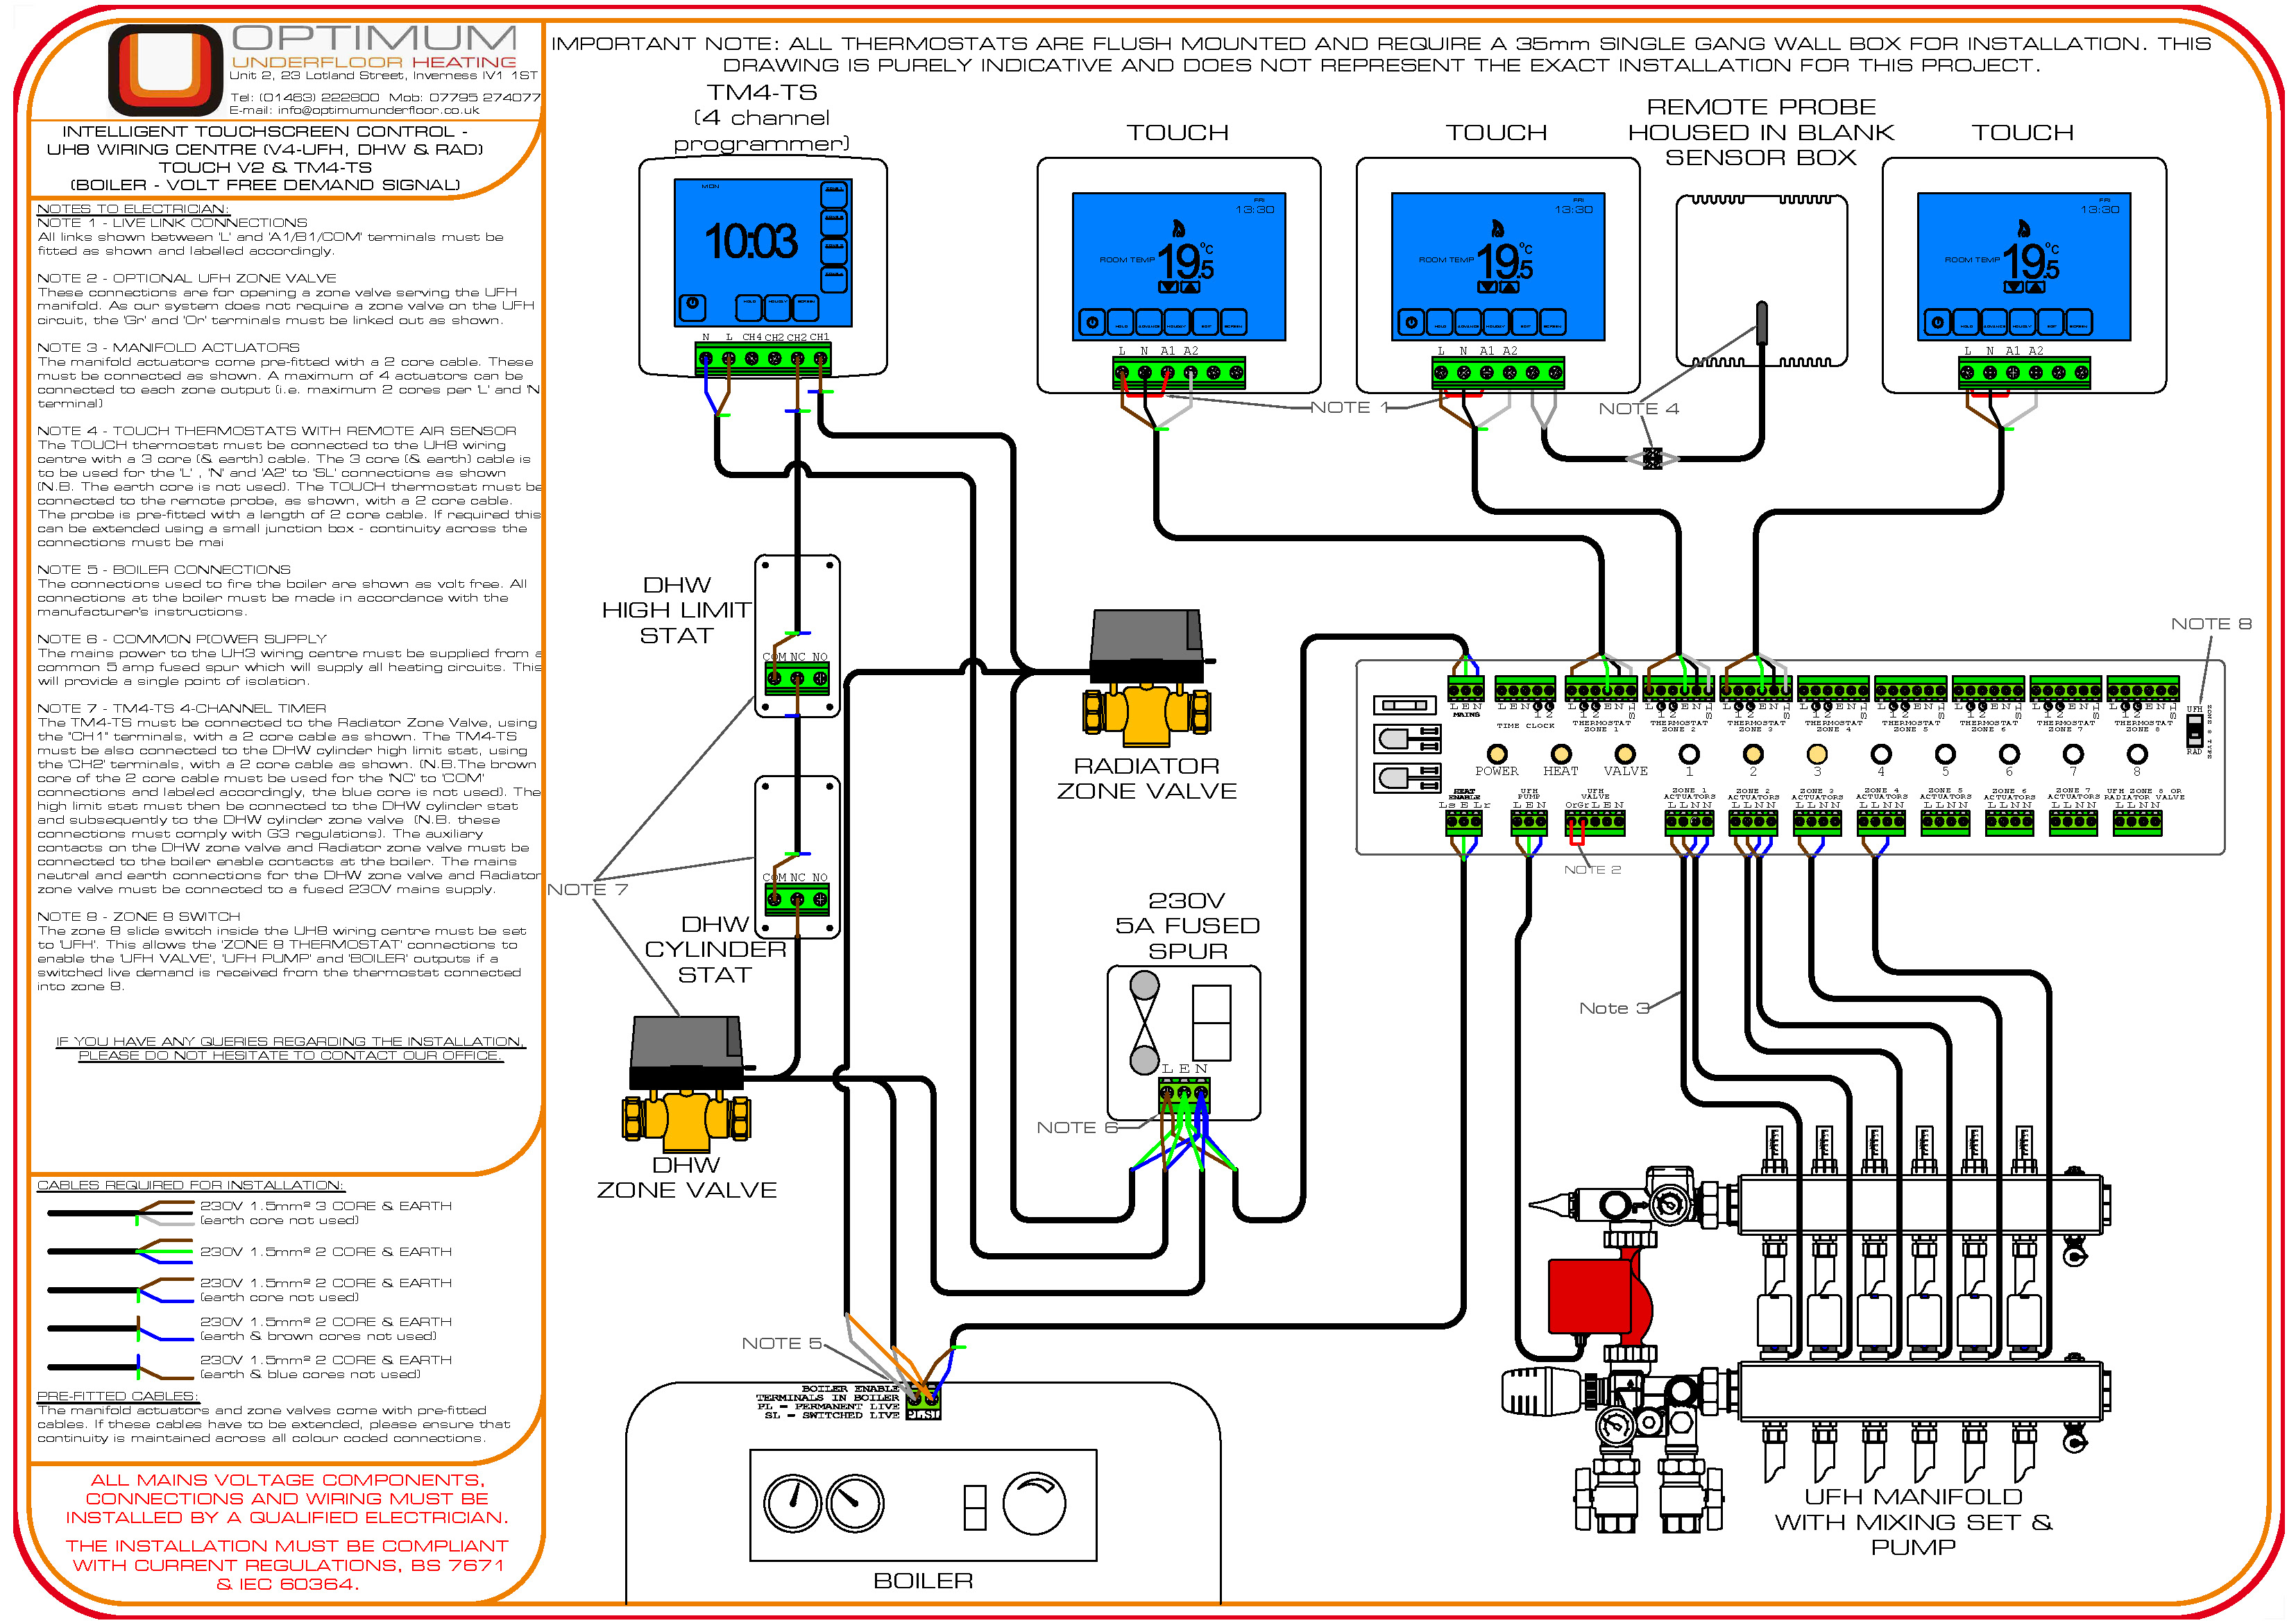 Nest Thermostat Wiring Diagram Technical Diagram Technical Moneydiagrams Adamediamedmera Se